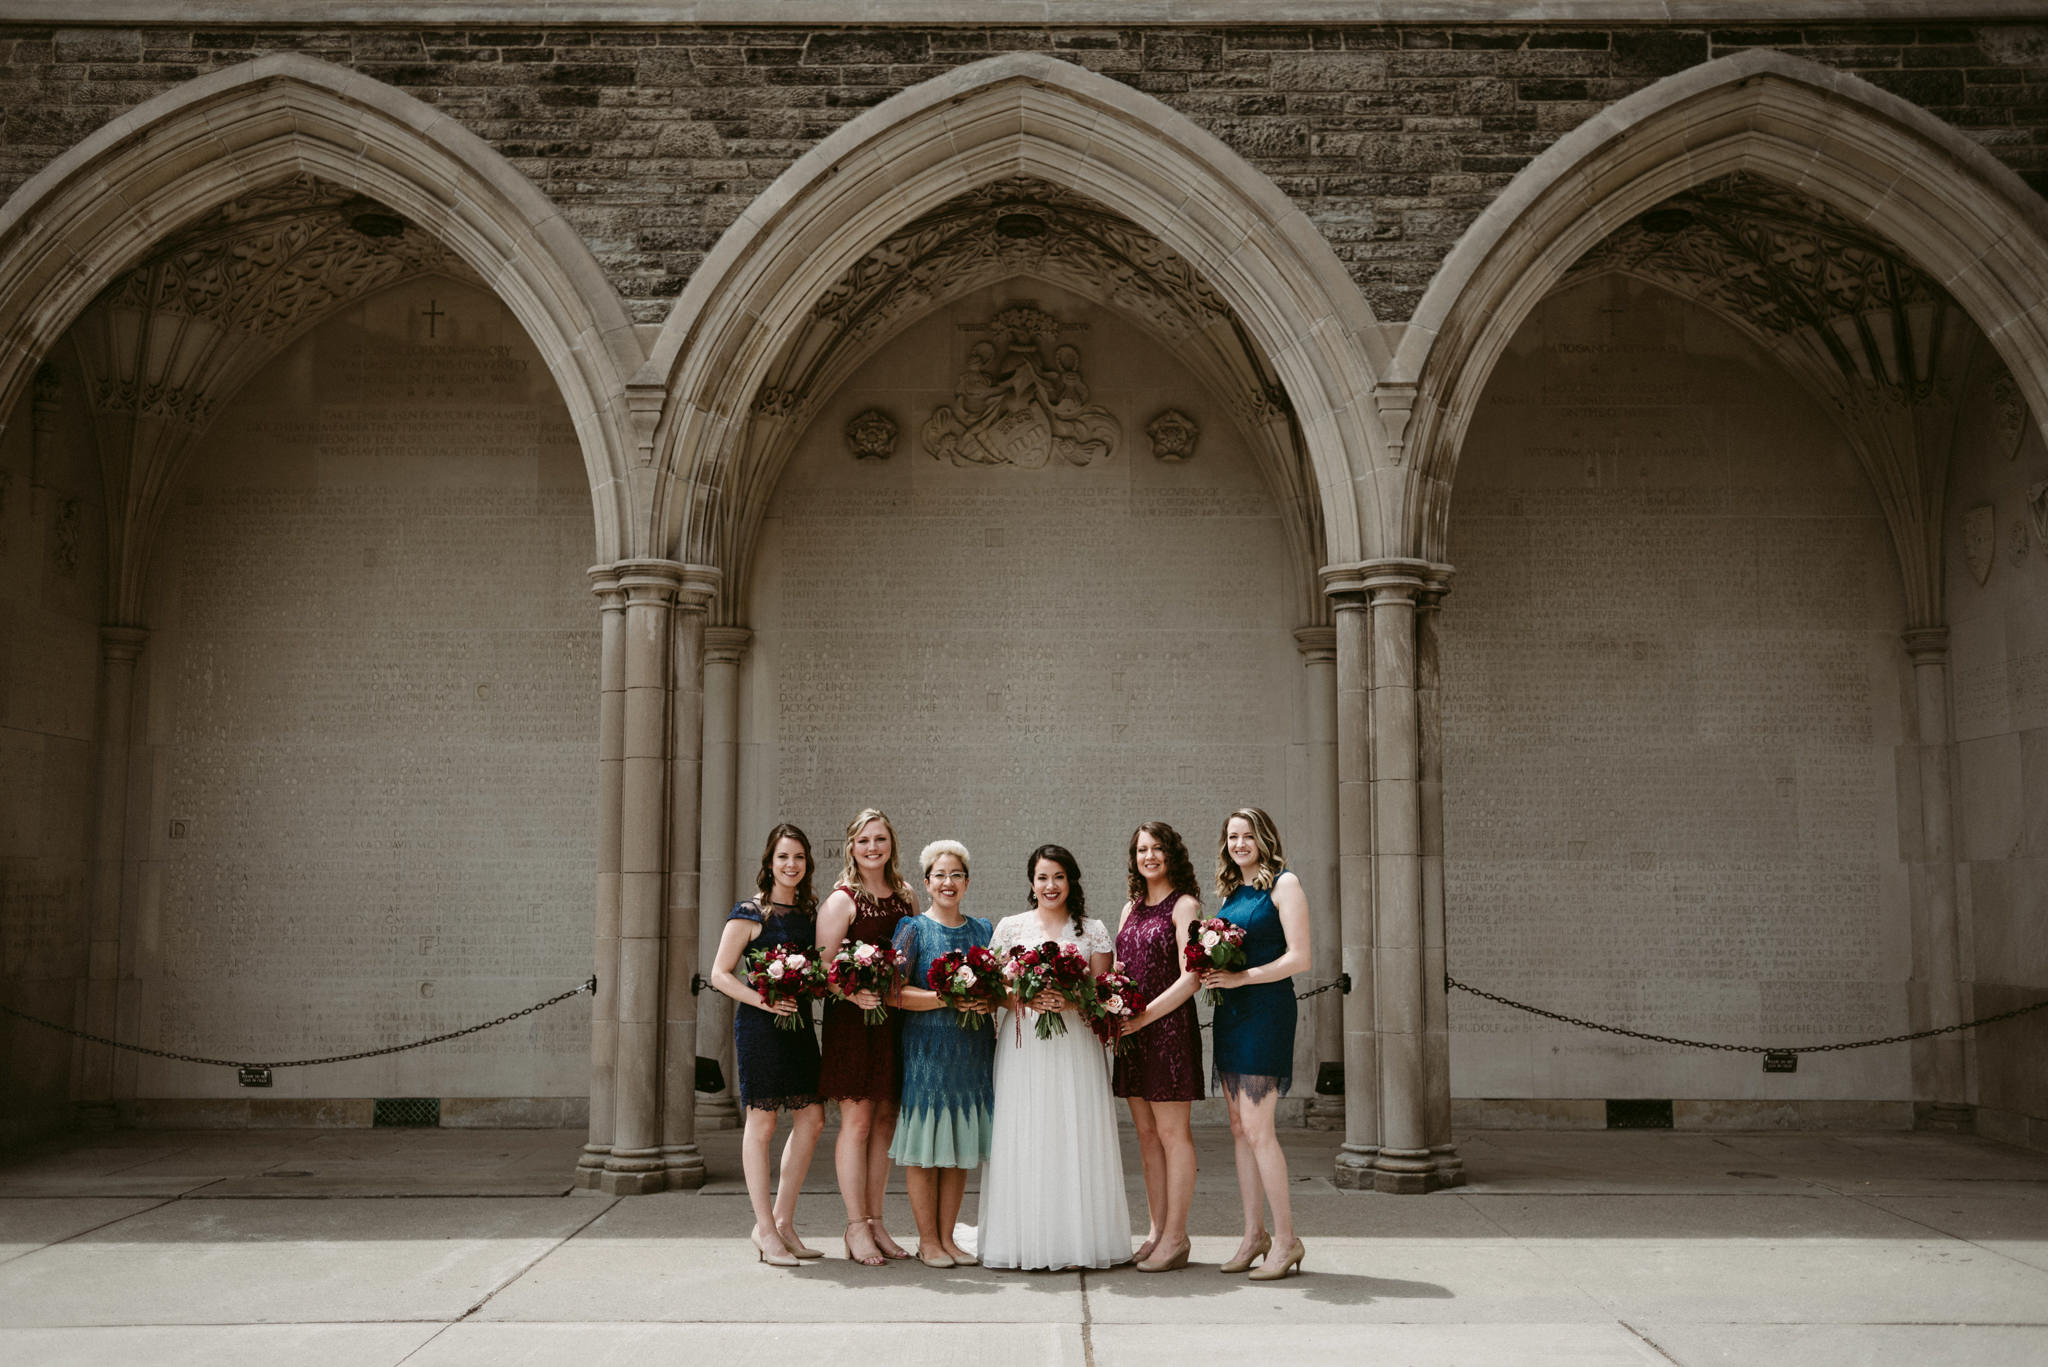 Bridal party photos at Hart House